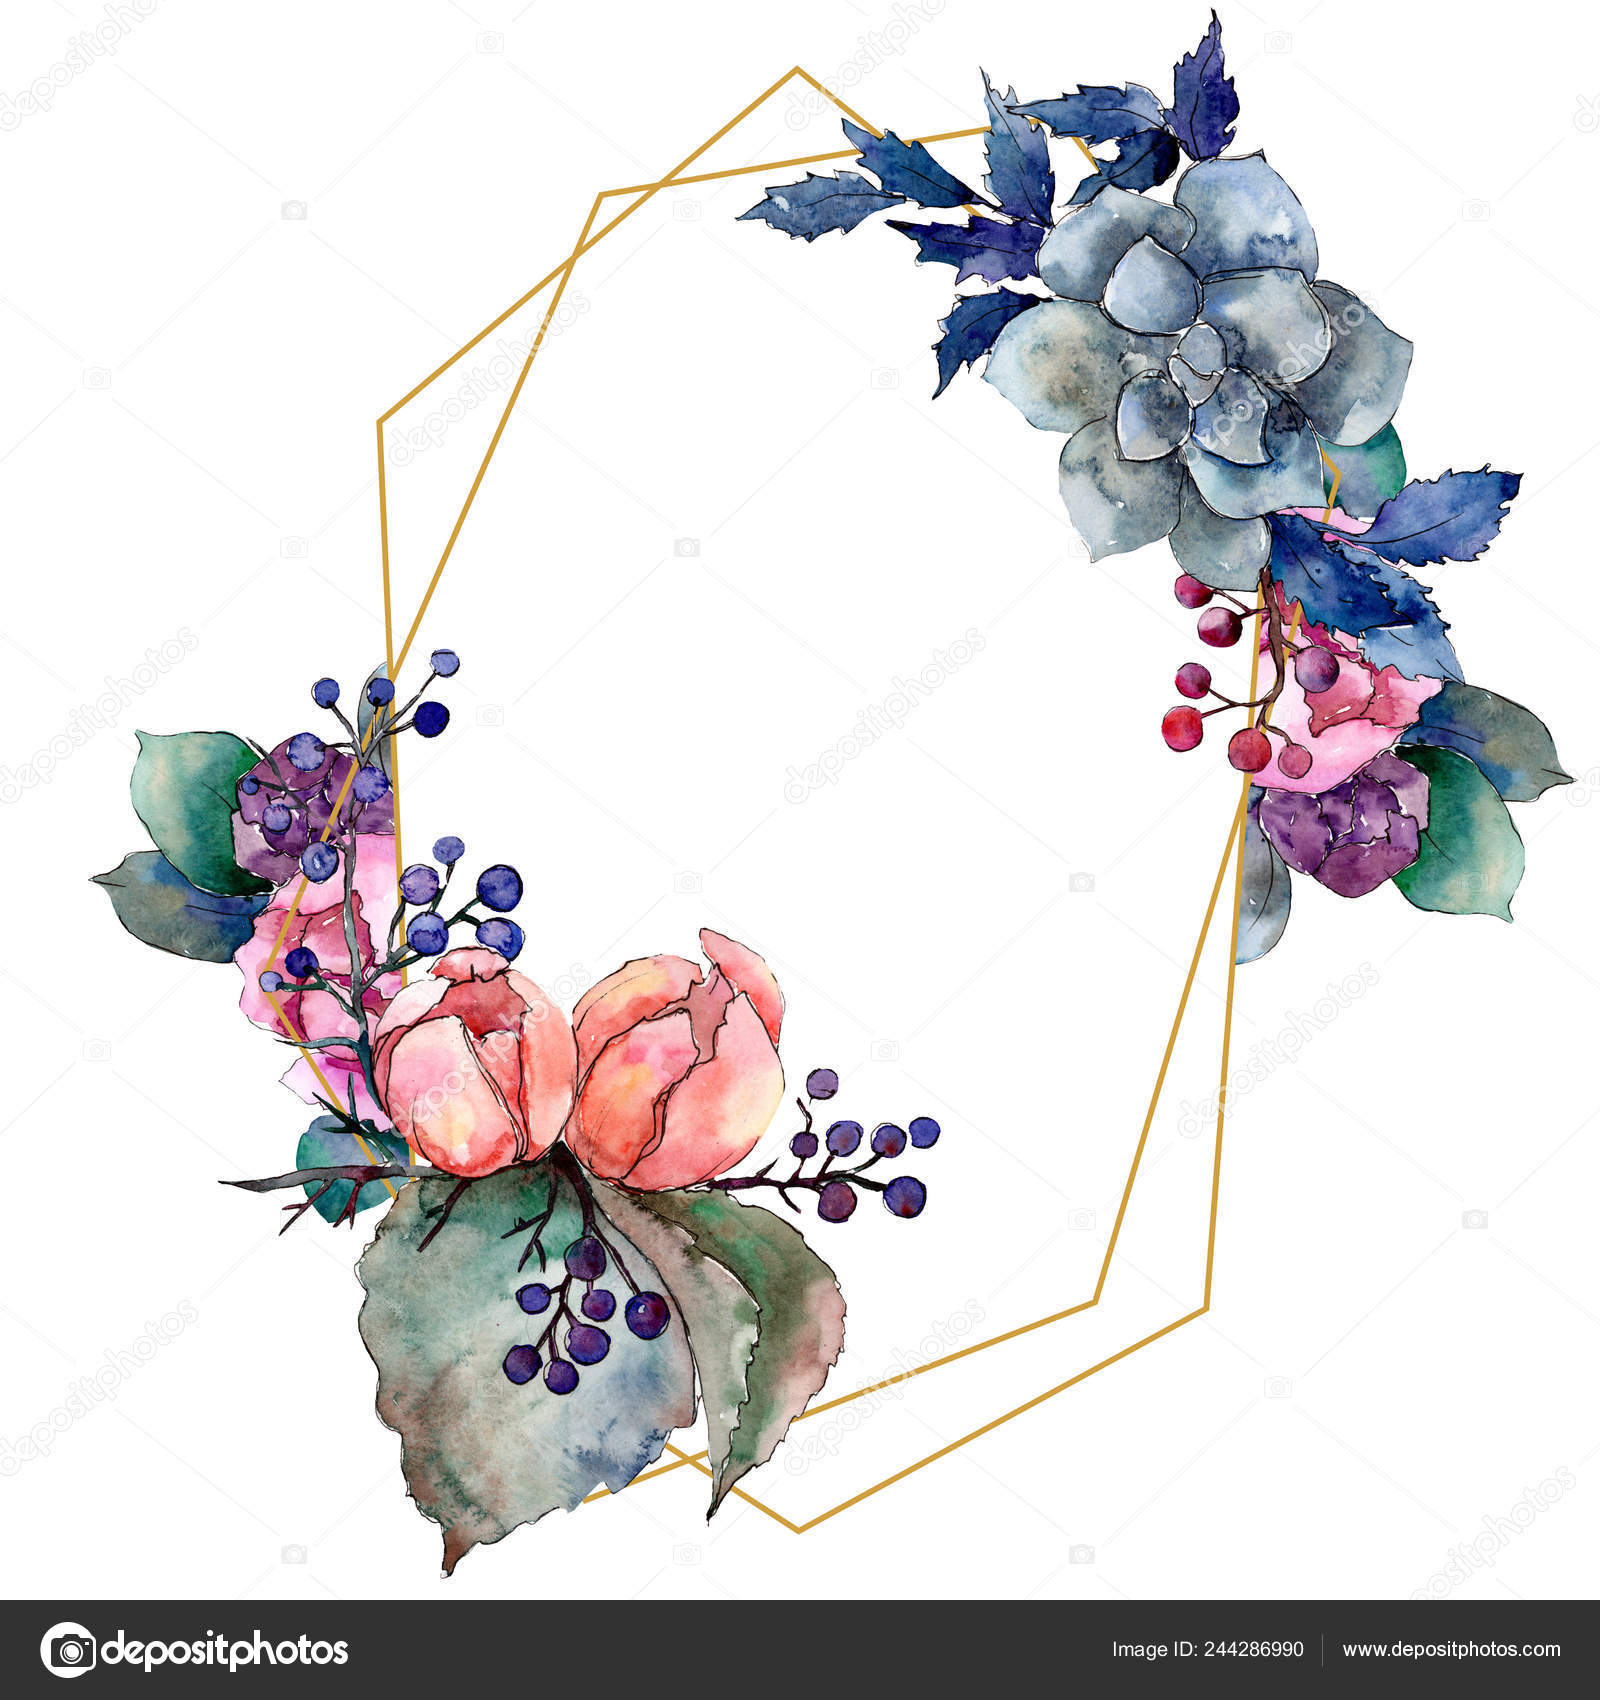 Peony And Succulent Bouquet Floral Flower Watercolor Background Illustration Set Frame Border Ornament Square Stock Photo Image By C Mystocks 244286990